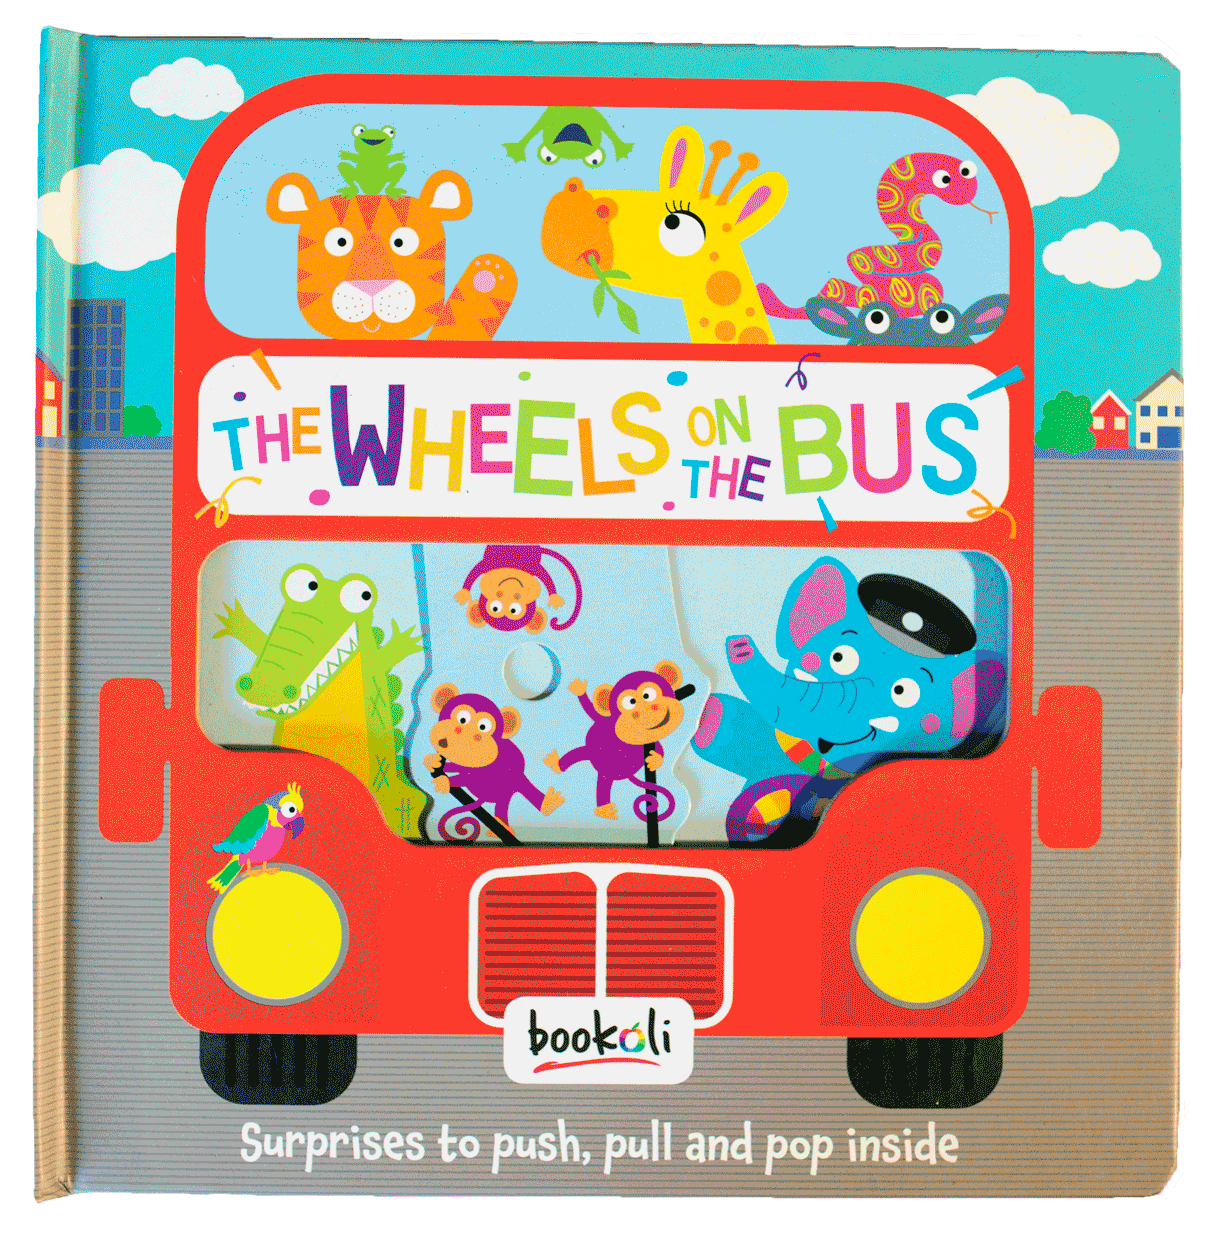 The Wheels on the Bus - Push, Pull, Pop